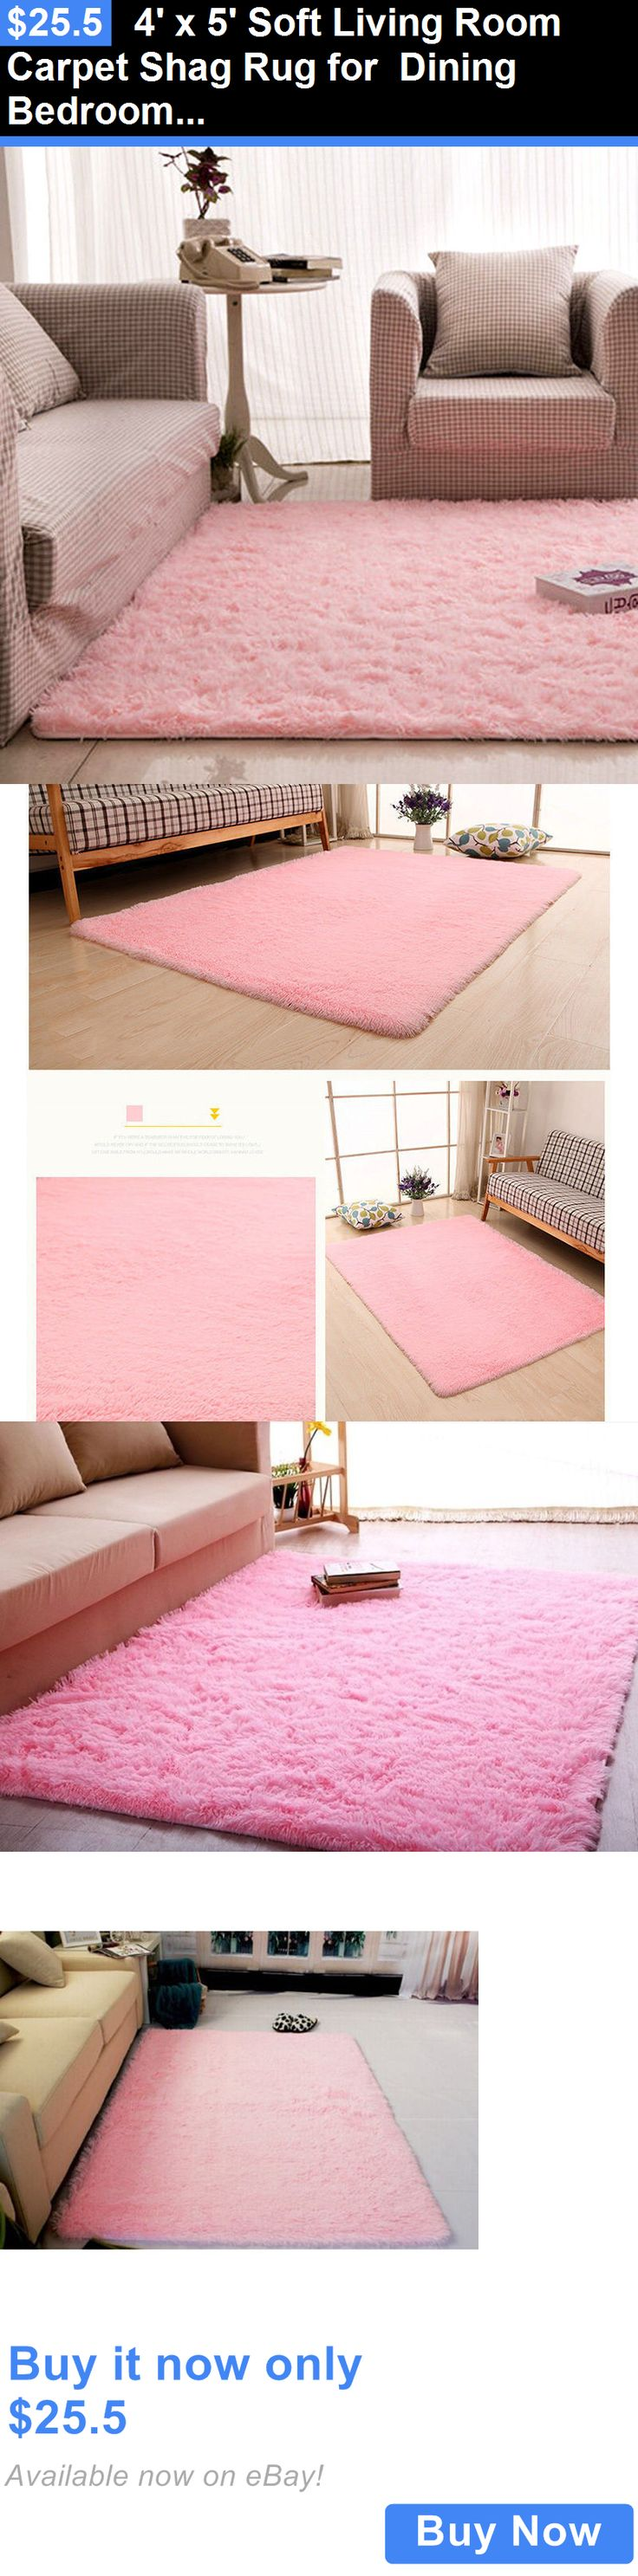 Kids Rugs: 4 X 5 Soft Living Room Carpet Shag Rug For Dining Bedroom Children Play Pink BUY IT NOW ONLY: $25.5